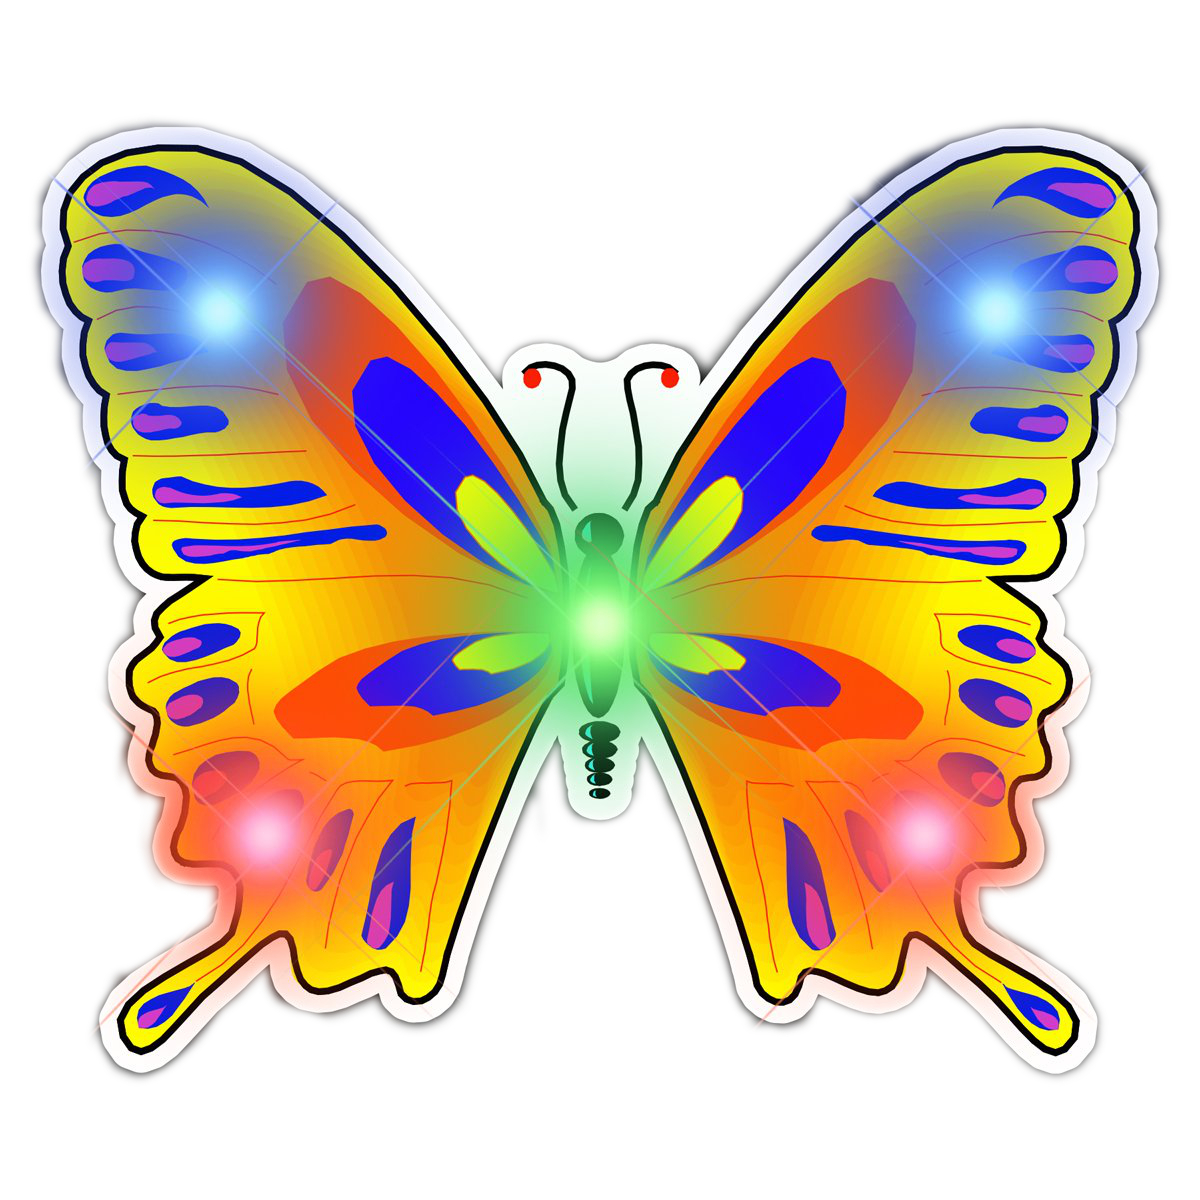 Mood Butterfly Flashing Body Light Lapel Pins All Body Lights and Blinkees